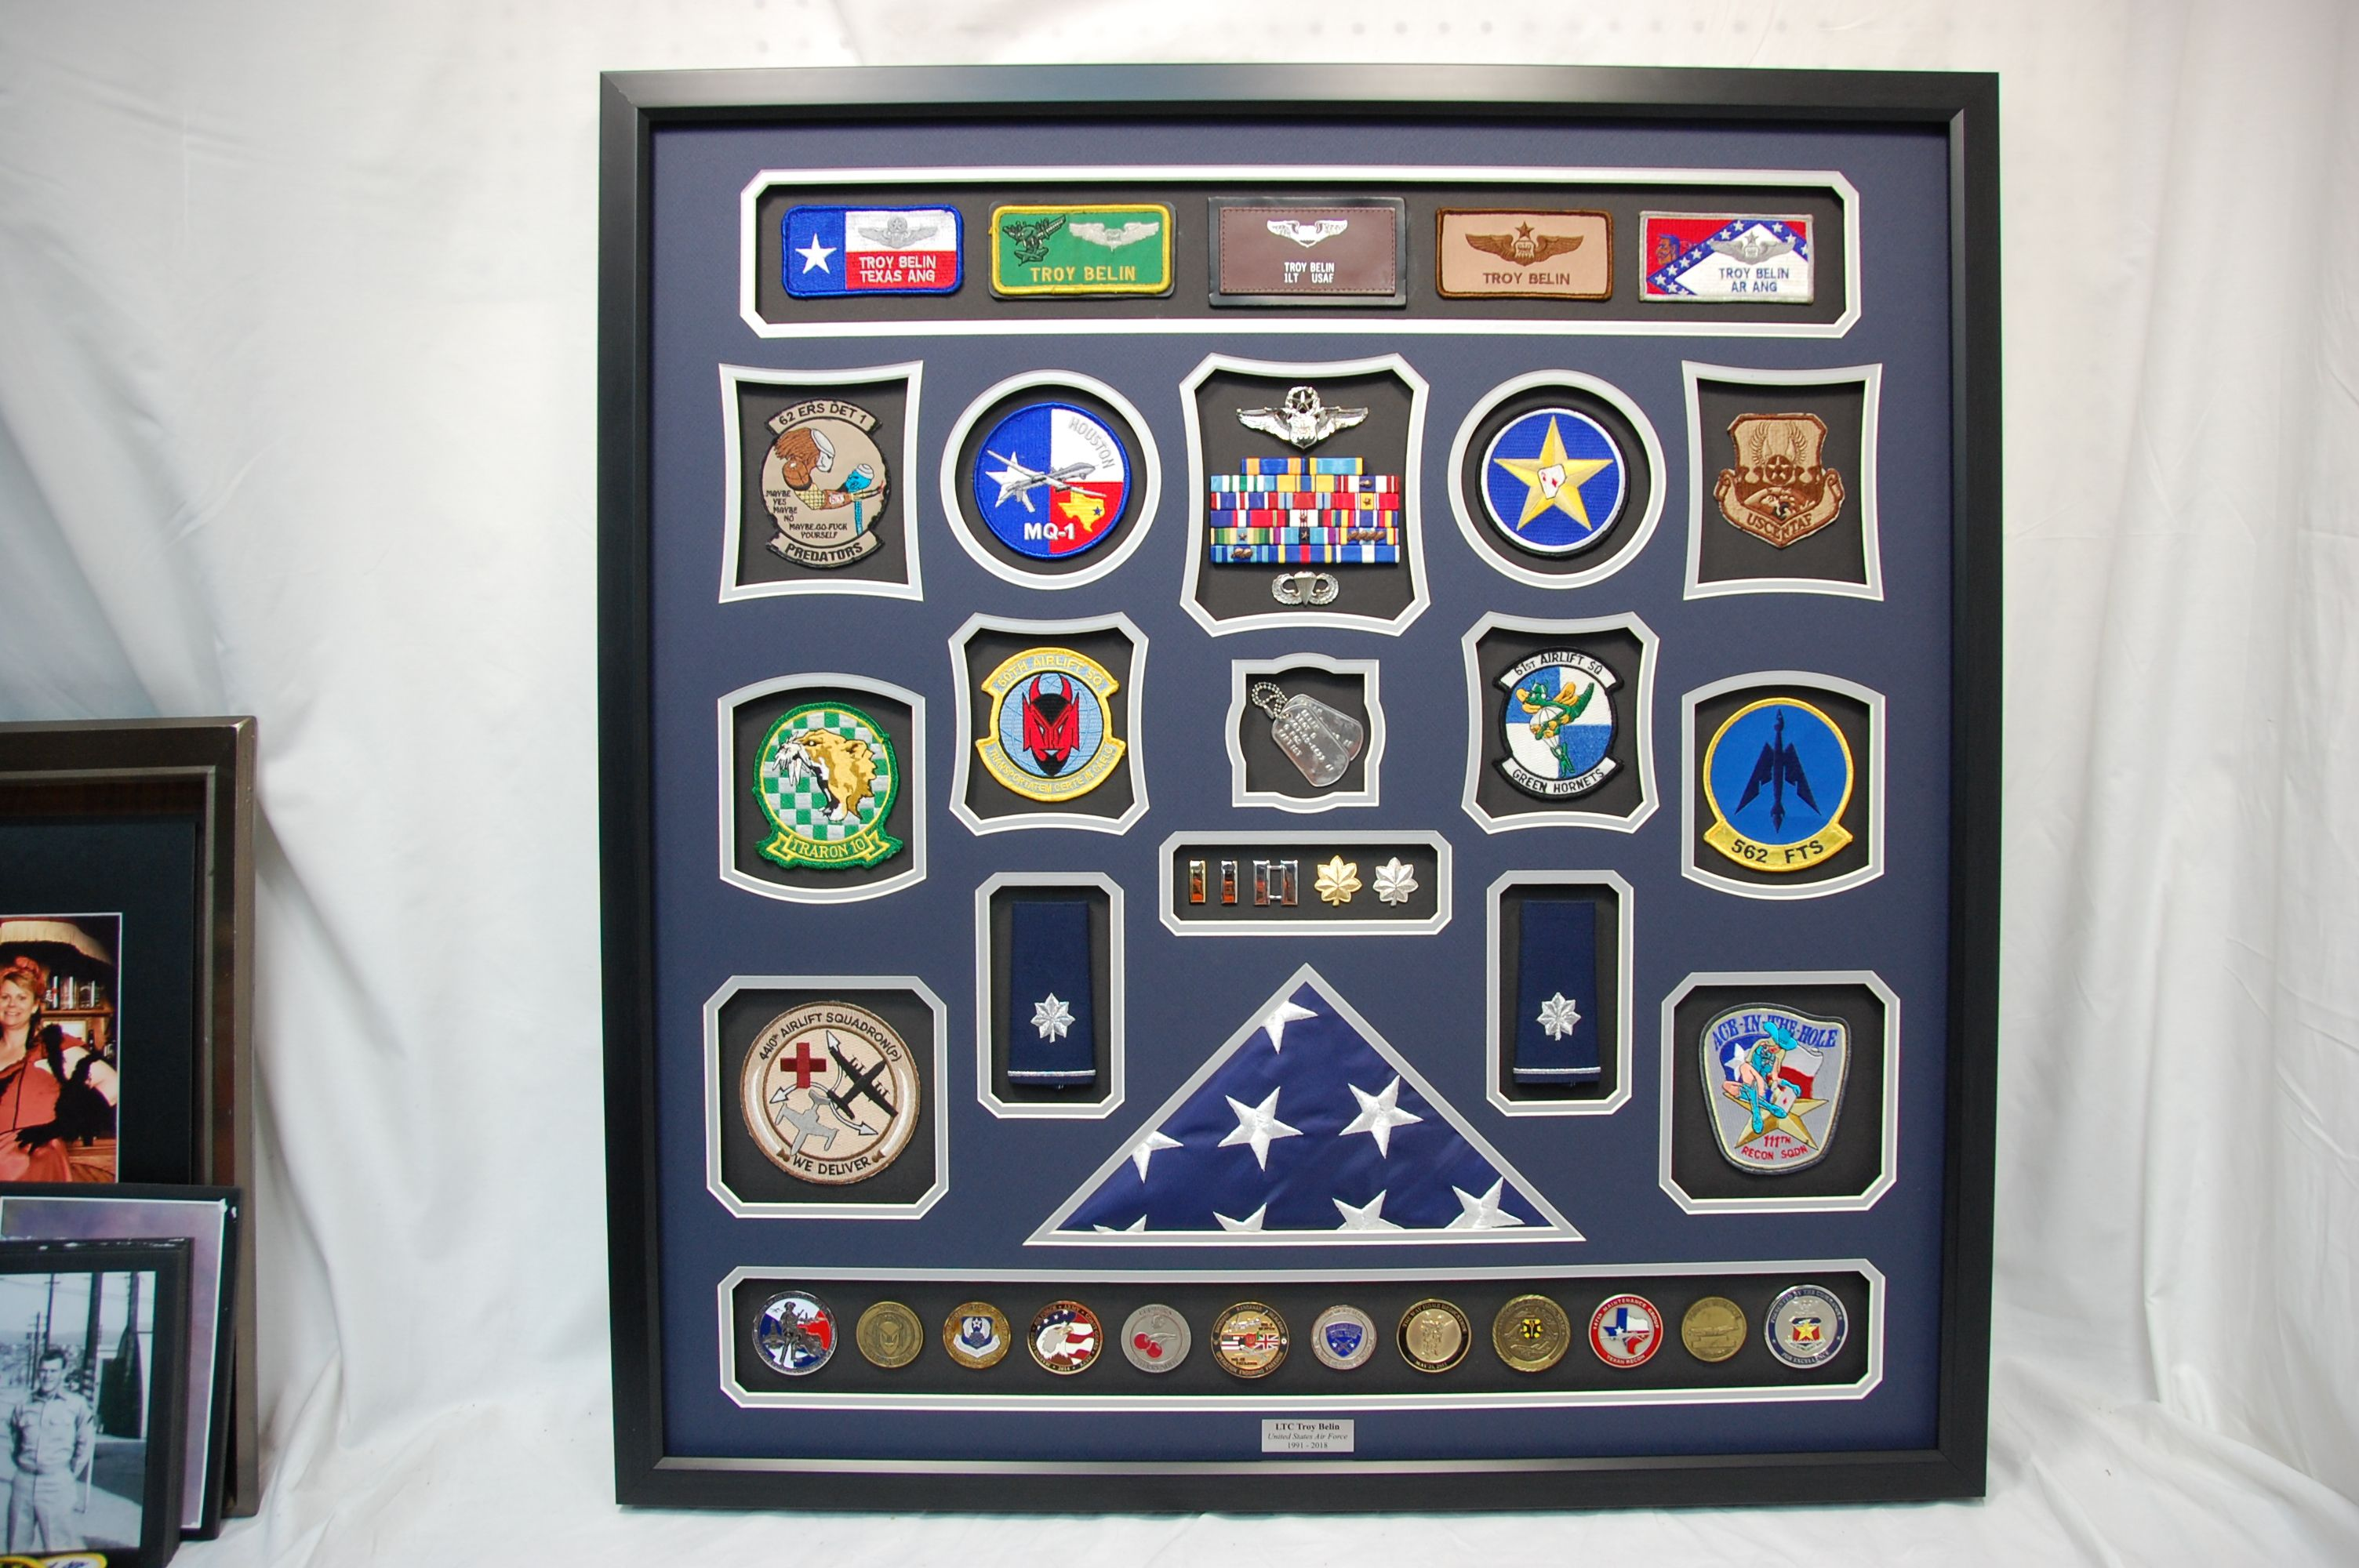 Air Force Officer Shadow box display. We mounted many